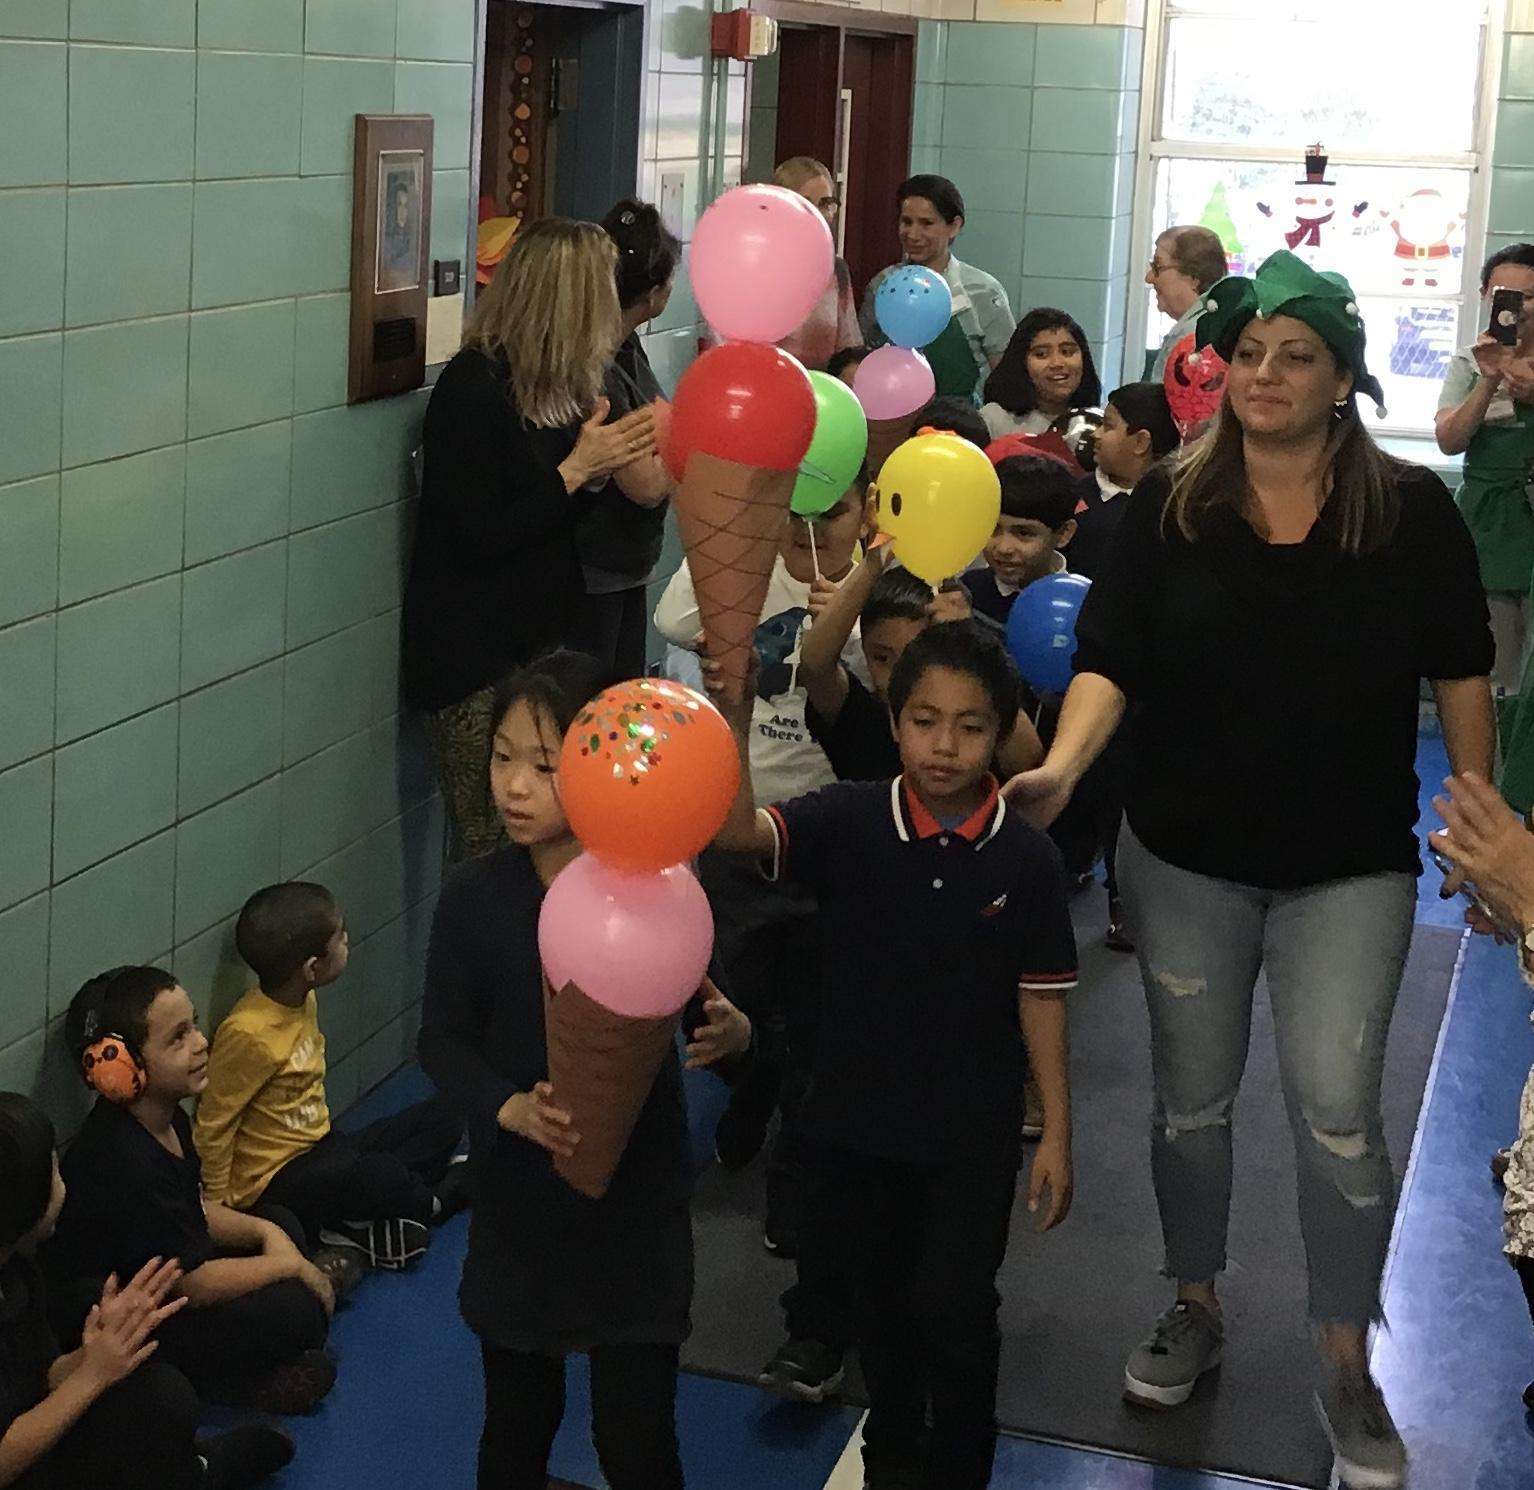 students and teachers parading in school hallway with balloons